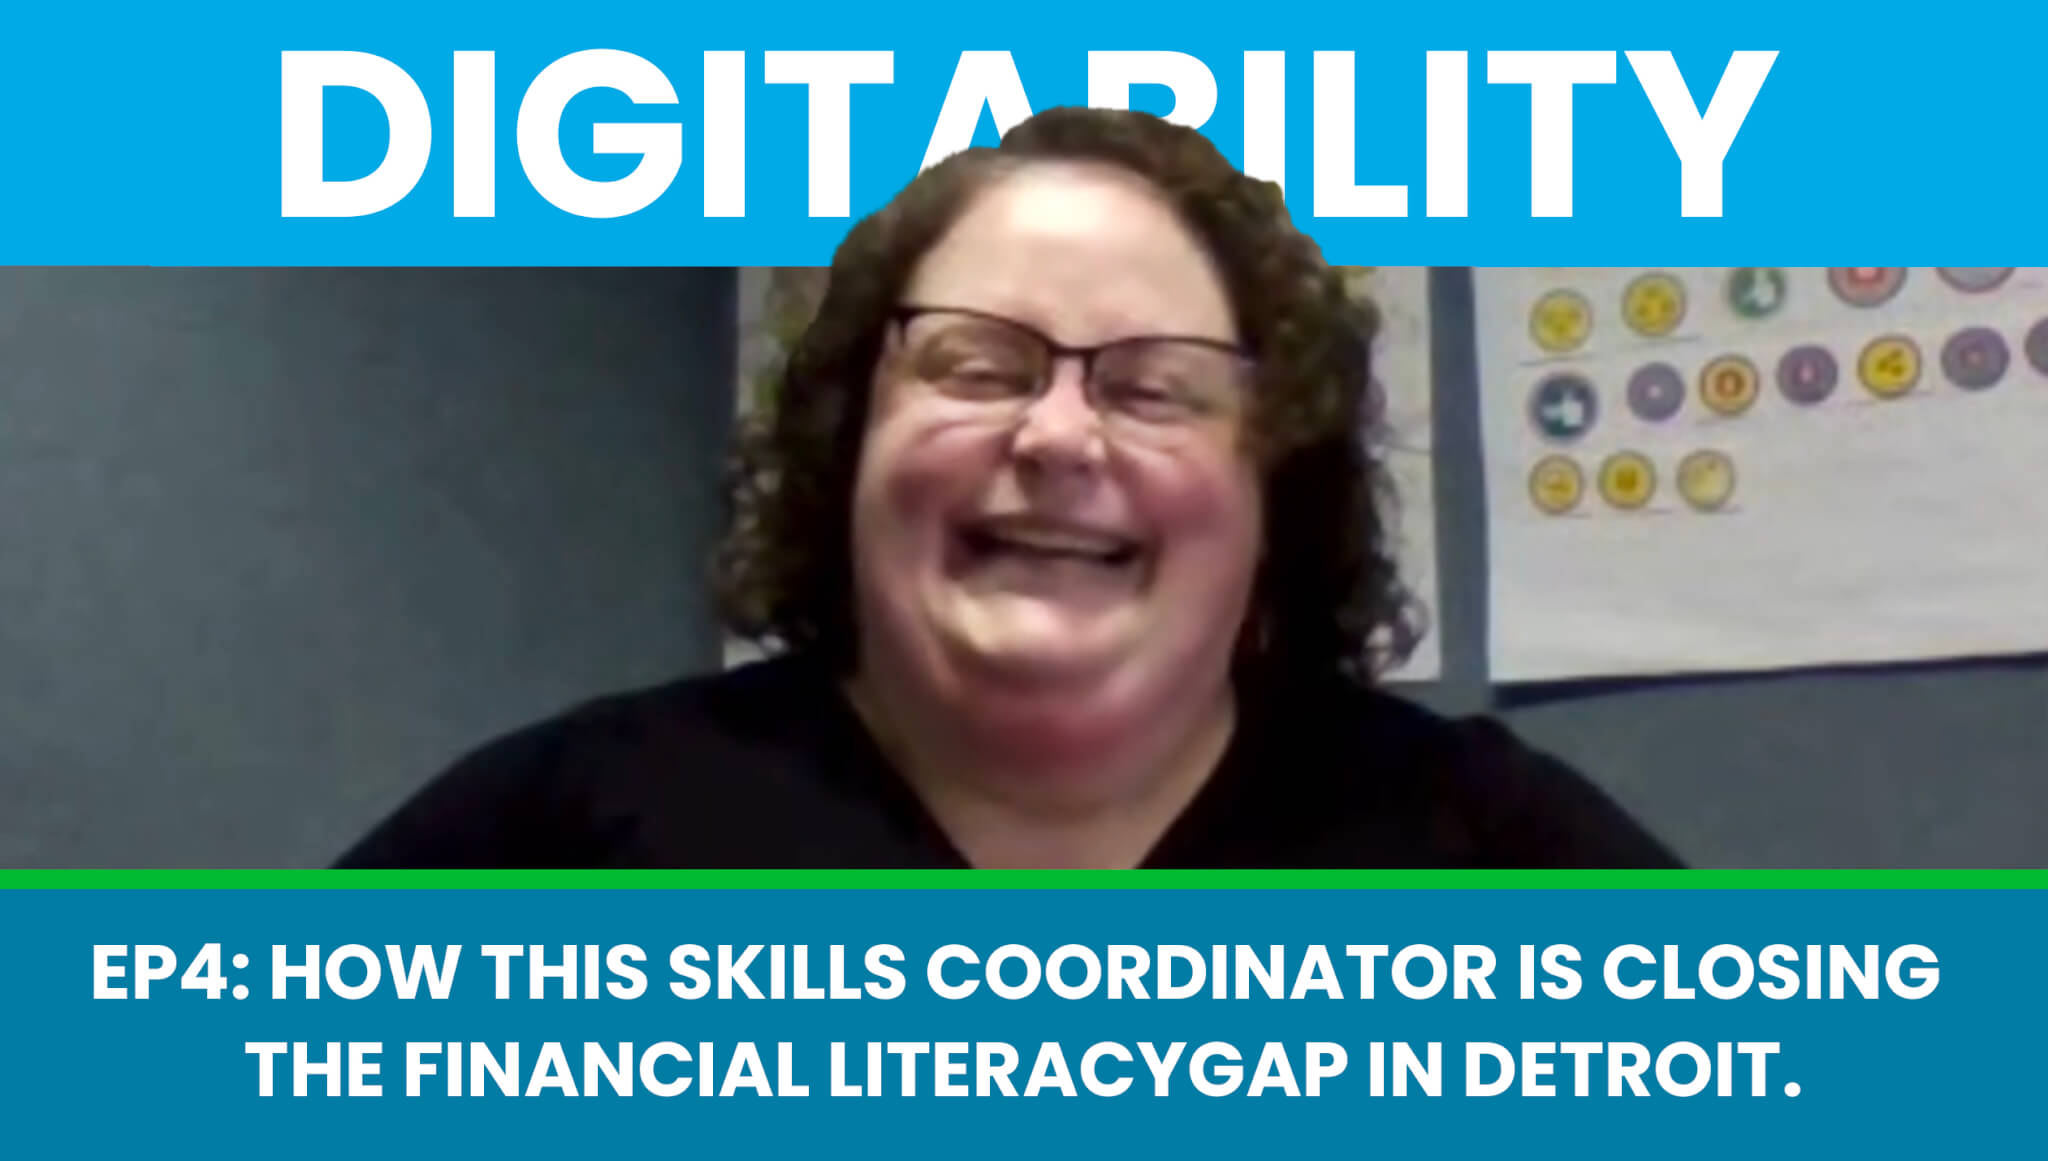 How this Skills Coordinator is Closing the Financial Literacy Gap in Detroit